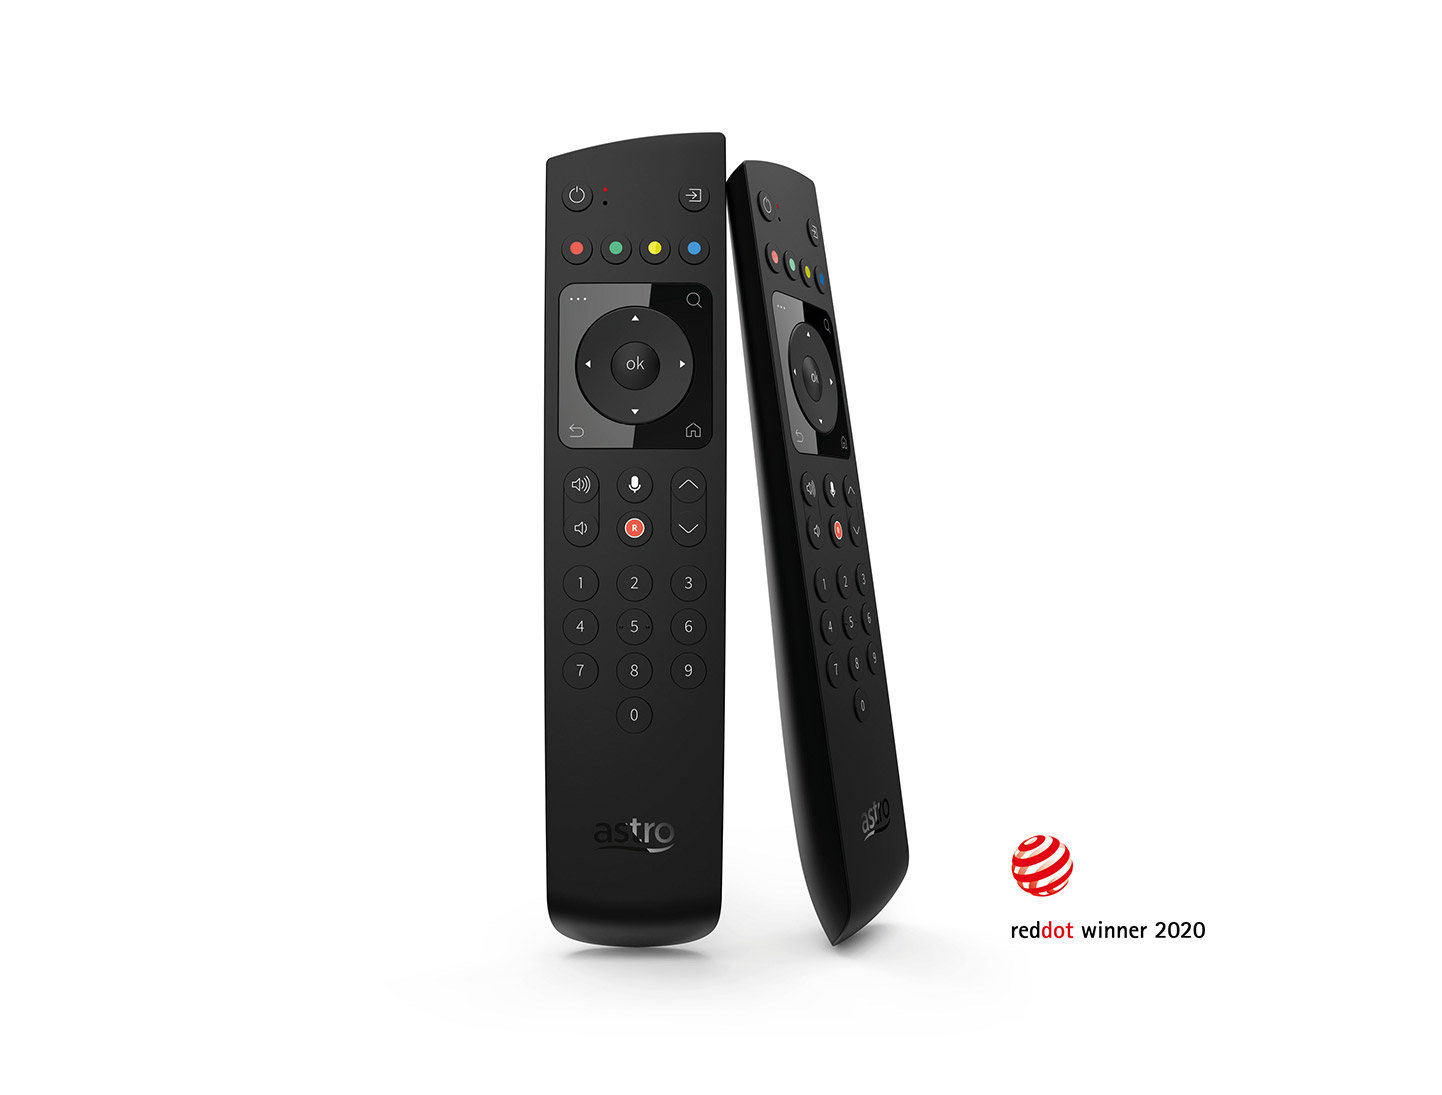 ruwido's astro ultra remote control wins red dot design award 2020